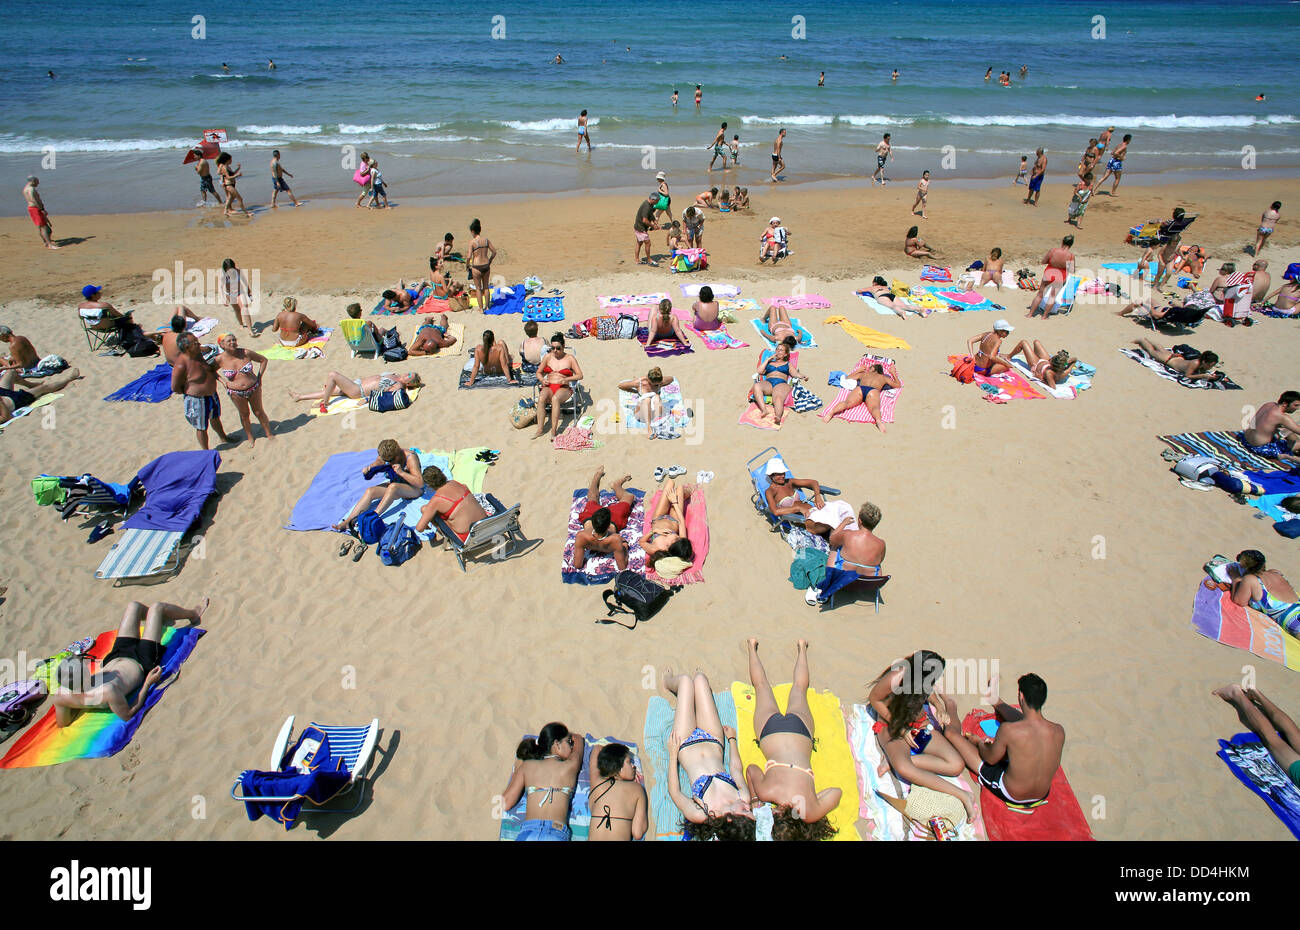 Crowded city beach during a hot summer day in Gijon, north Spain - Stock Image